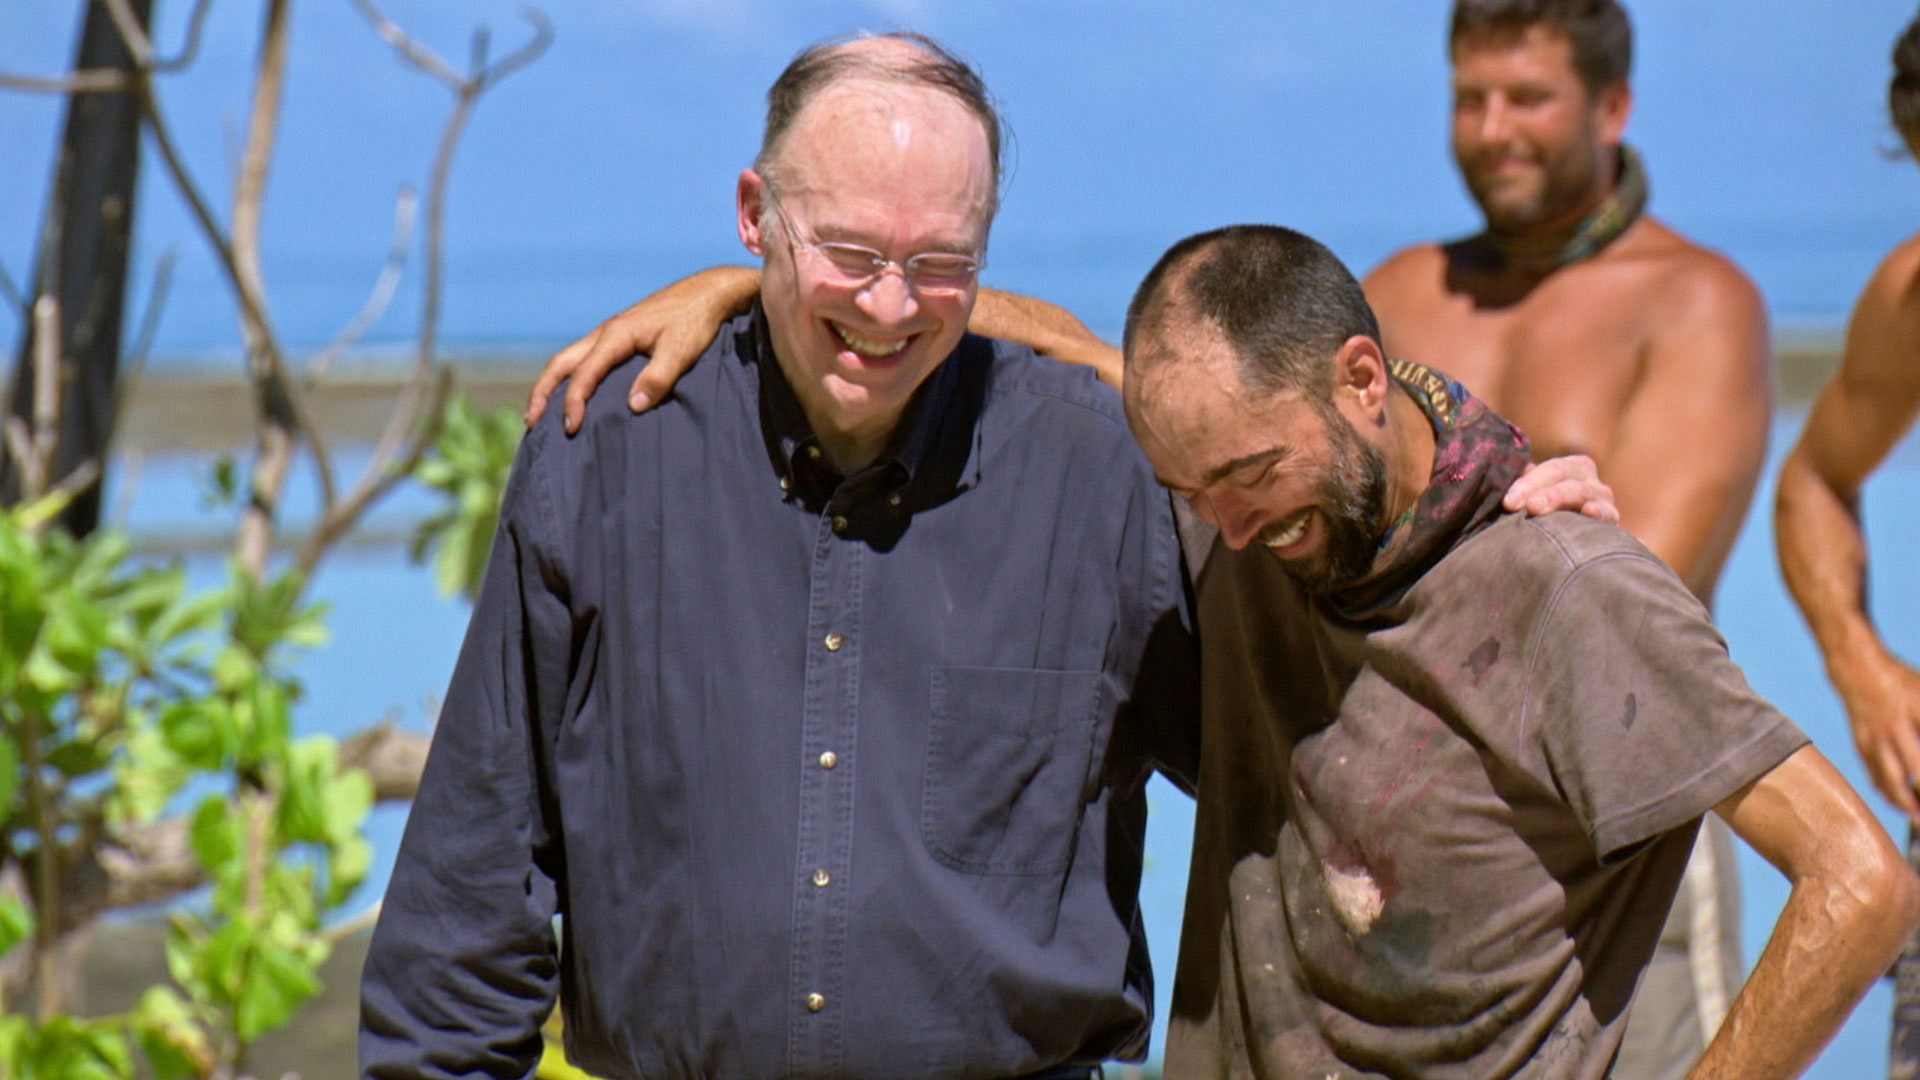 David can't help but smile when his father surprises him in Fiji.